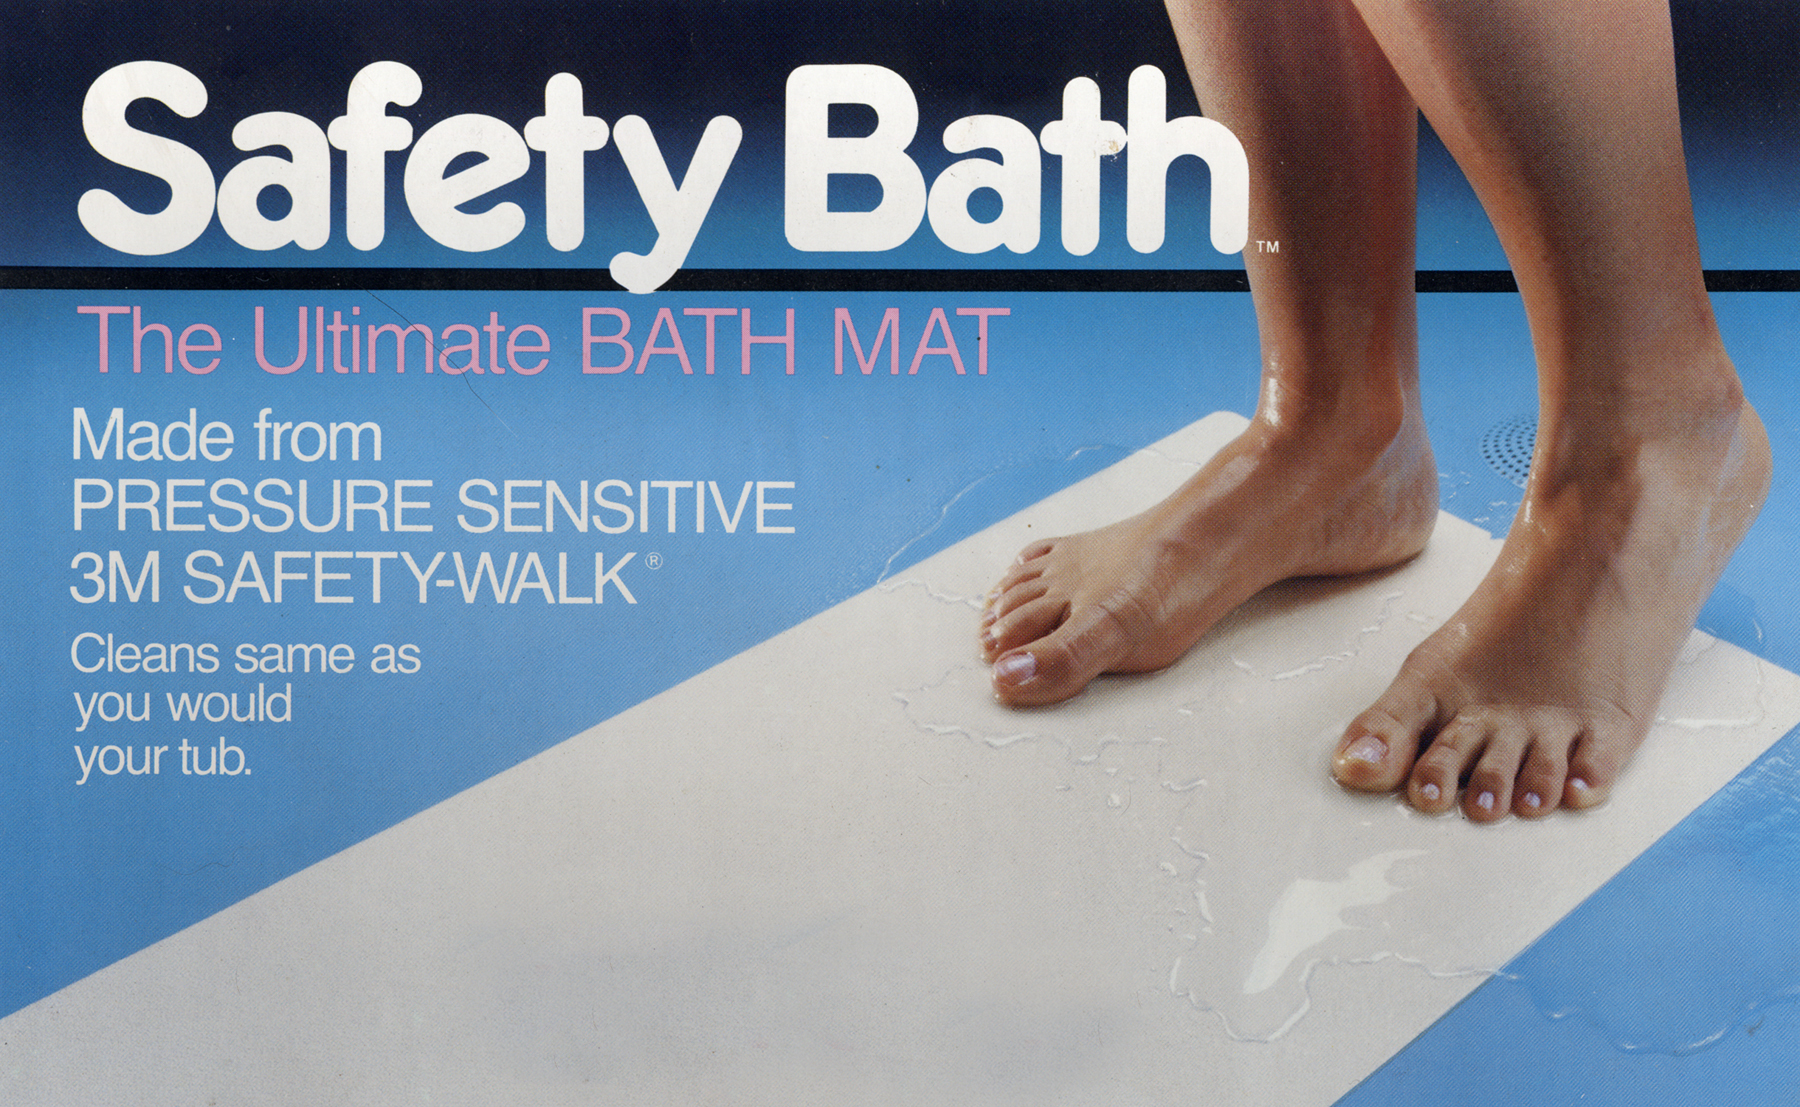 Safety Bath Helps Prevent Slip And Fall In Bathrooms From